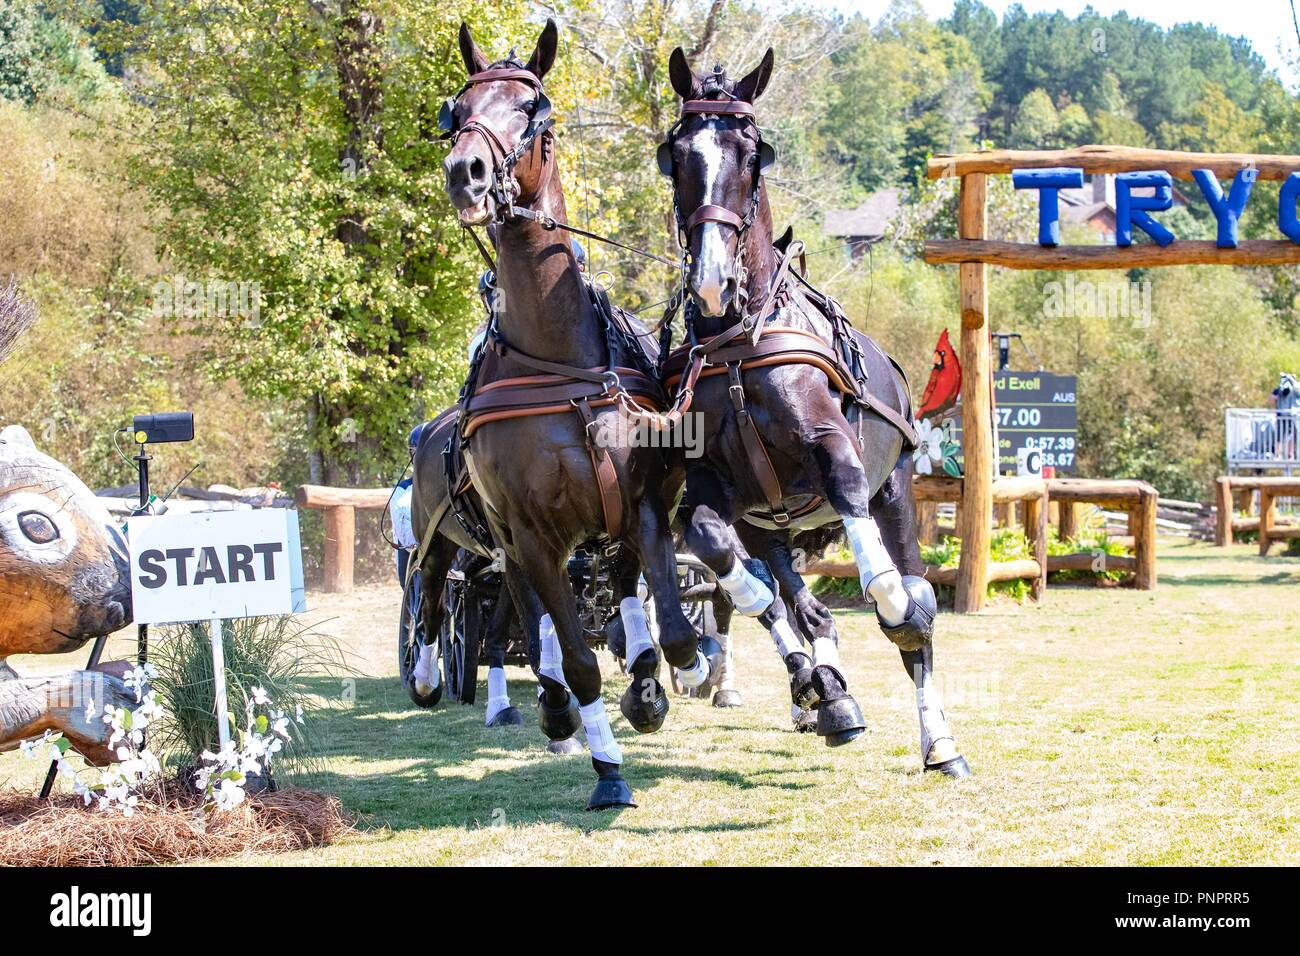 Tryon, USA. 22nd September 2018. Boyd Exell. AUS. FEI World Team and Individual Driving Championships. AUS. Day 11. World Equestrian Games. WEG 2018 Tryon. North Carolina. USA. 22/09/2018. Credit: Sport In Pictures/Alamy Live News Stock Photo